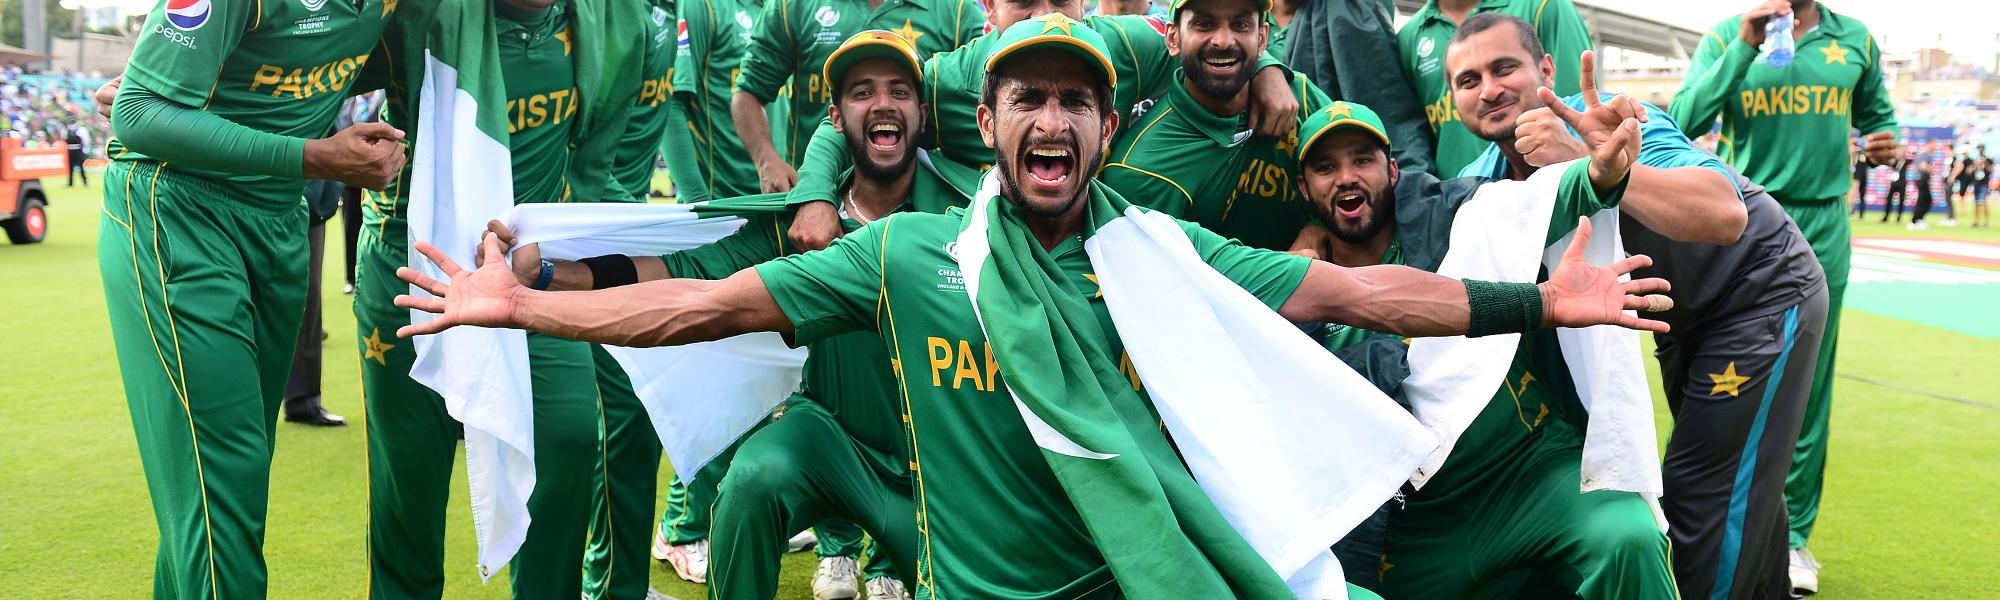 Pakistan team celebrating.jpg